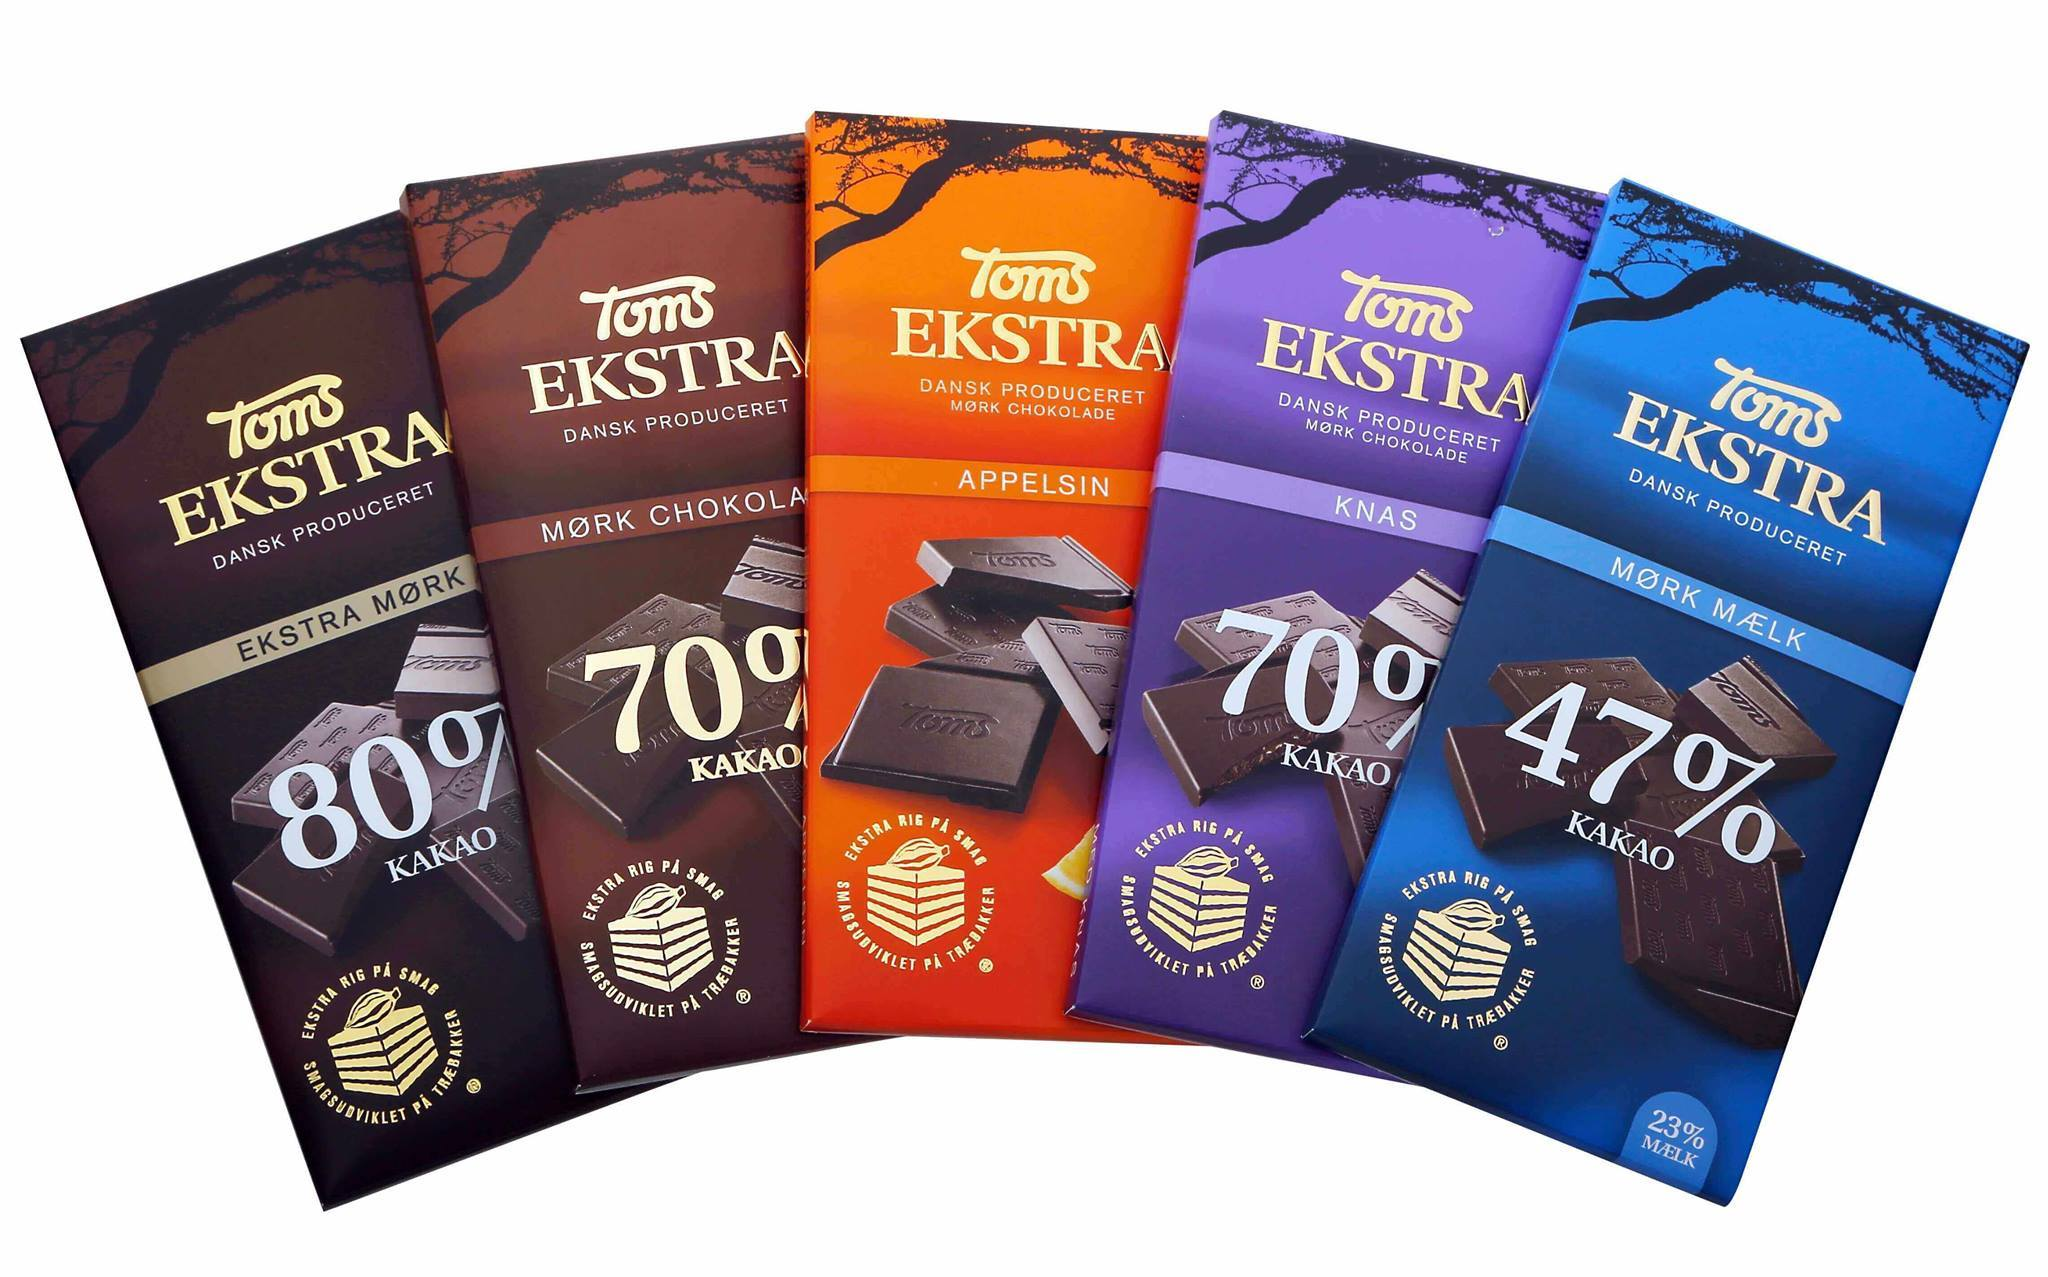 ​  Extra rich in taste with cocoa beans matured on wooden trays in Ghana's rainforest. Toms Extra was launched in 2010. Photo: Toms Group.  ​